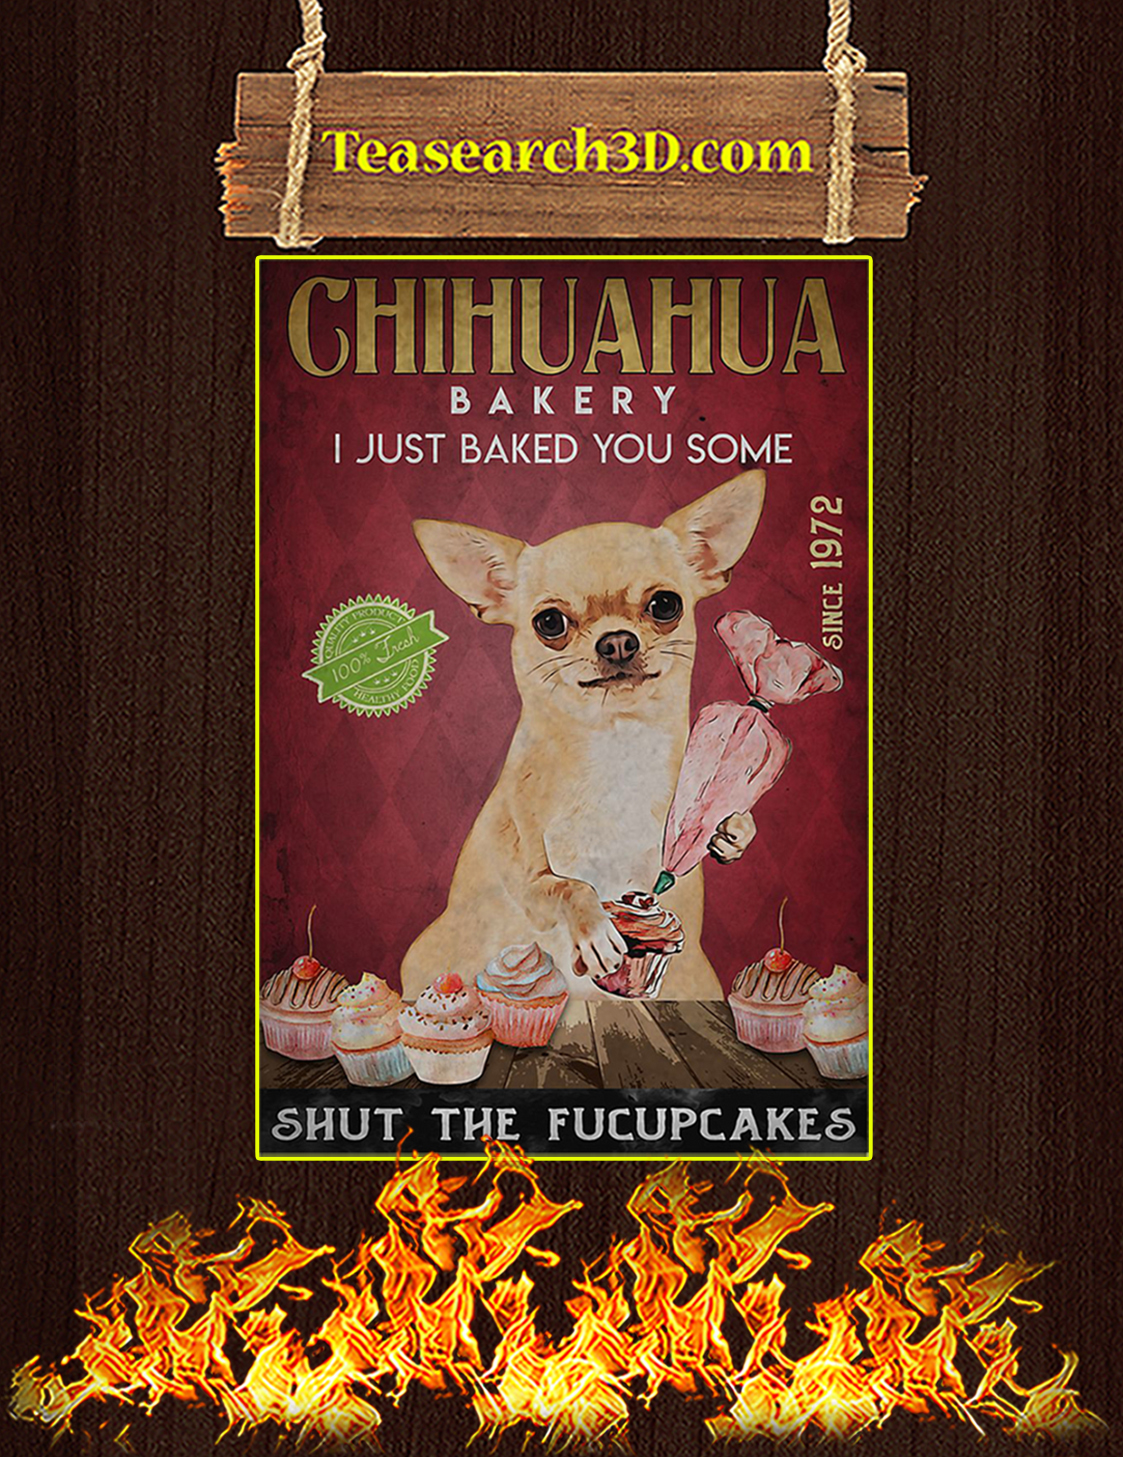 Chihuahua bakery I just baked you some poster A3